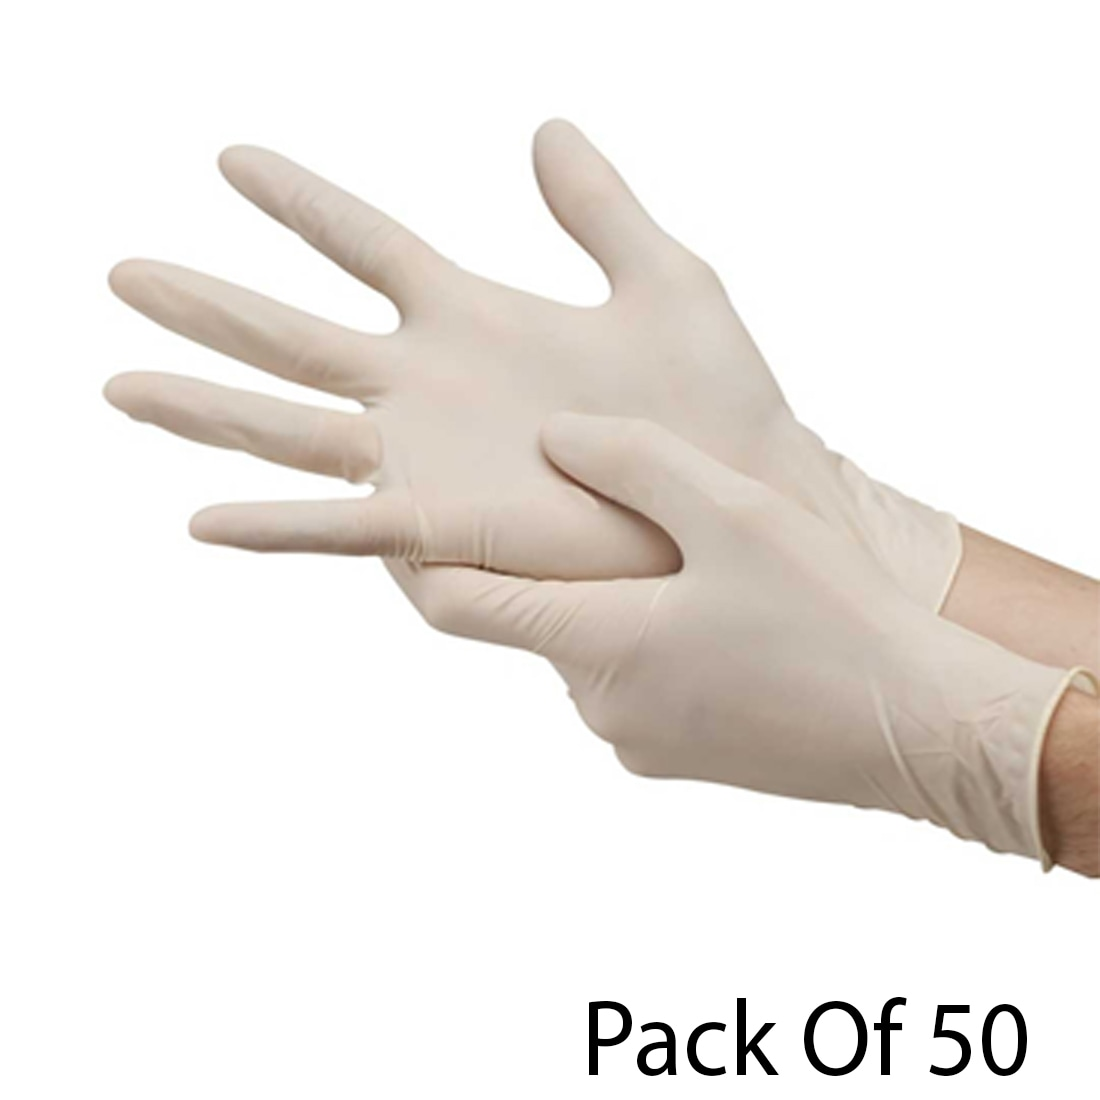 Surgical Gloves For Daily Uses